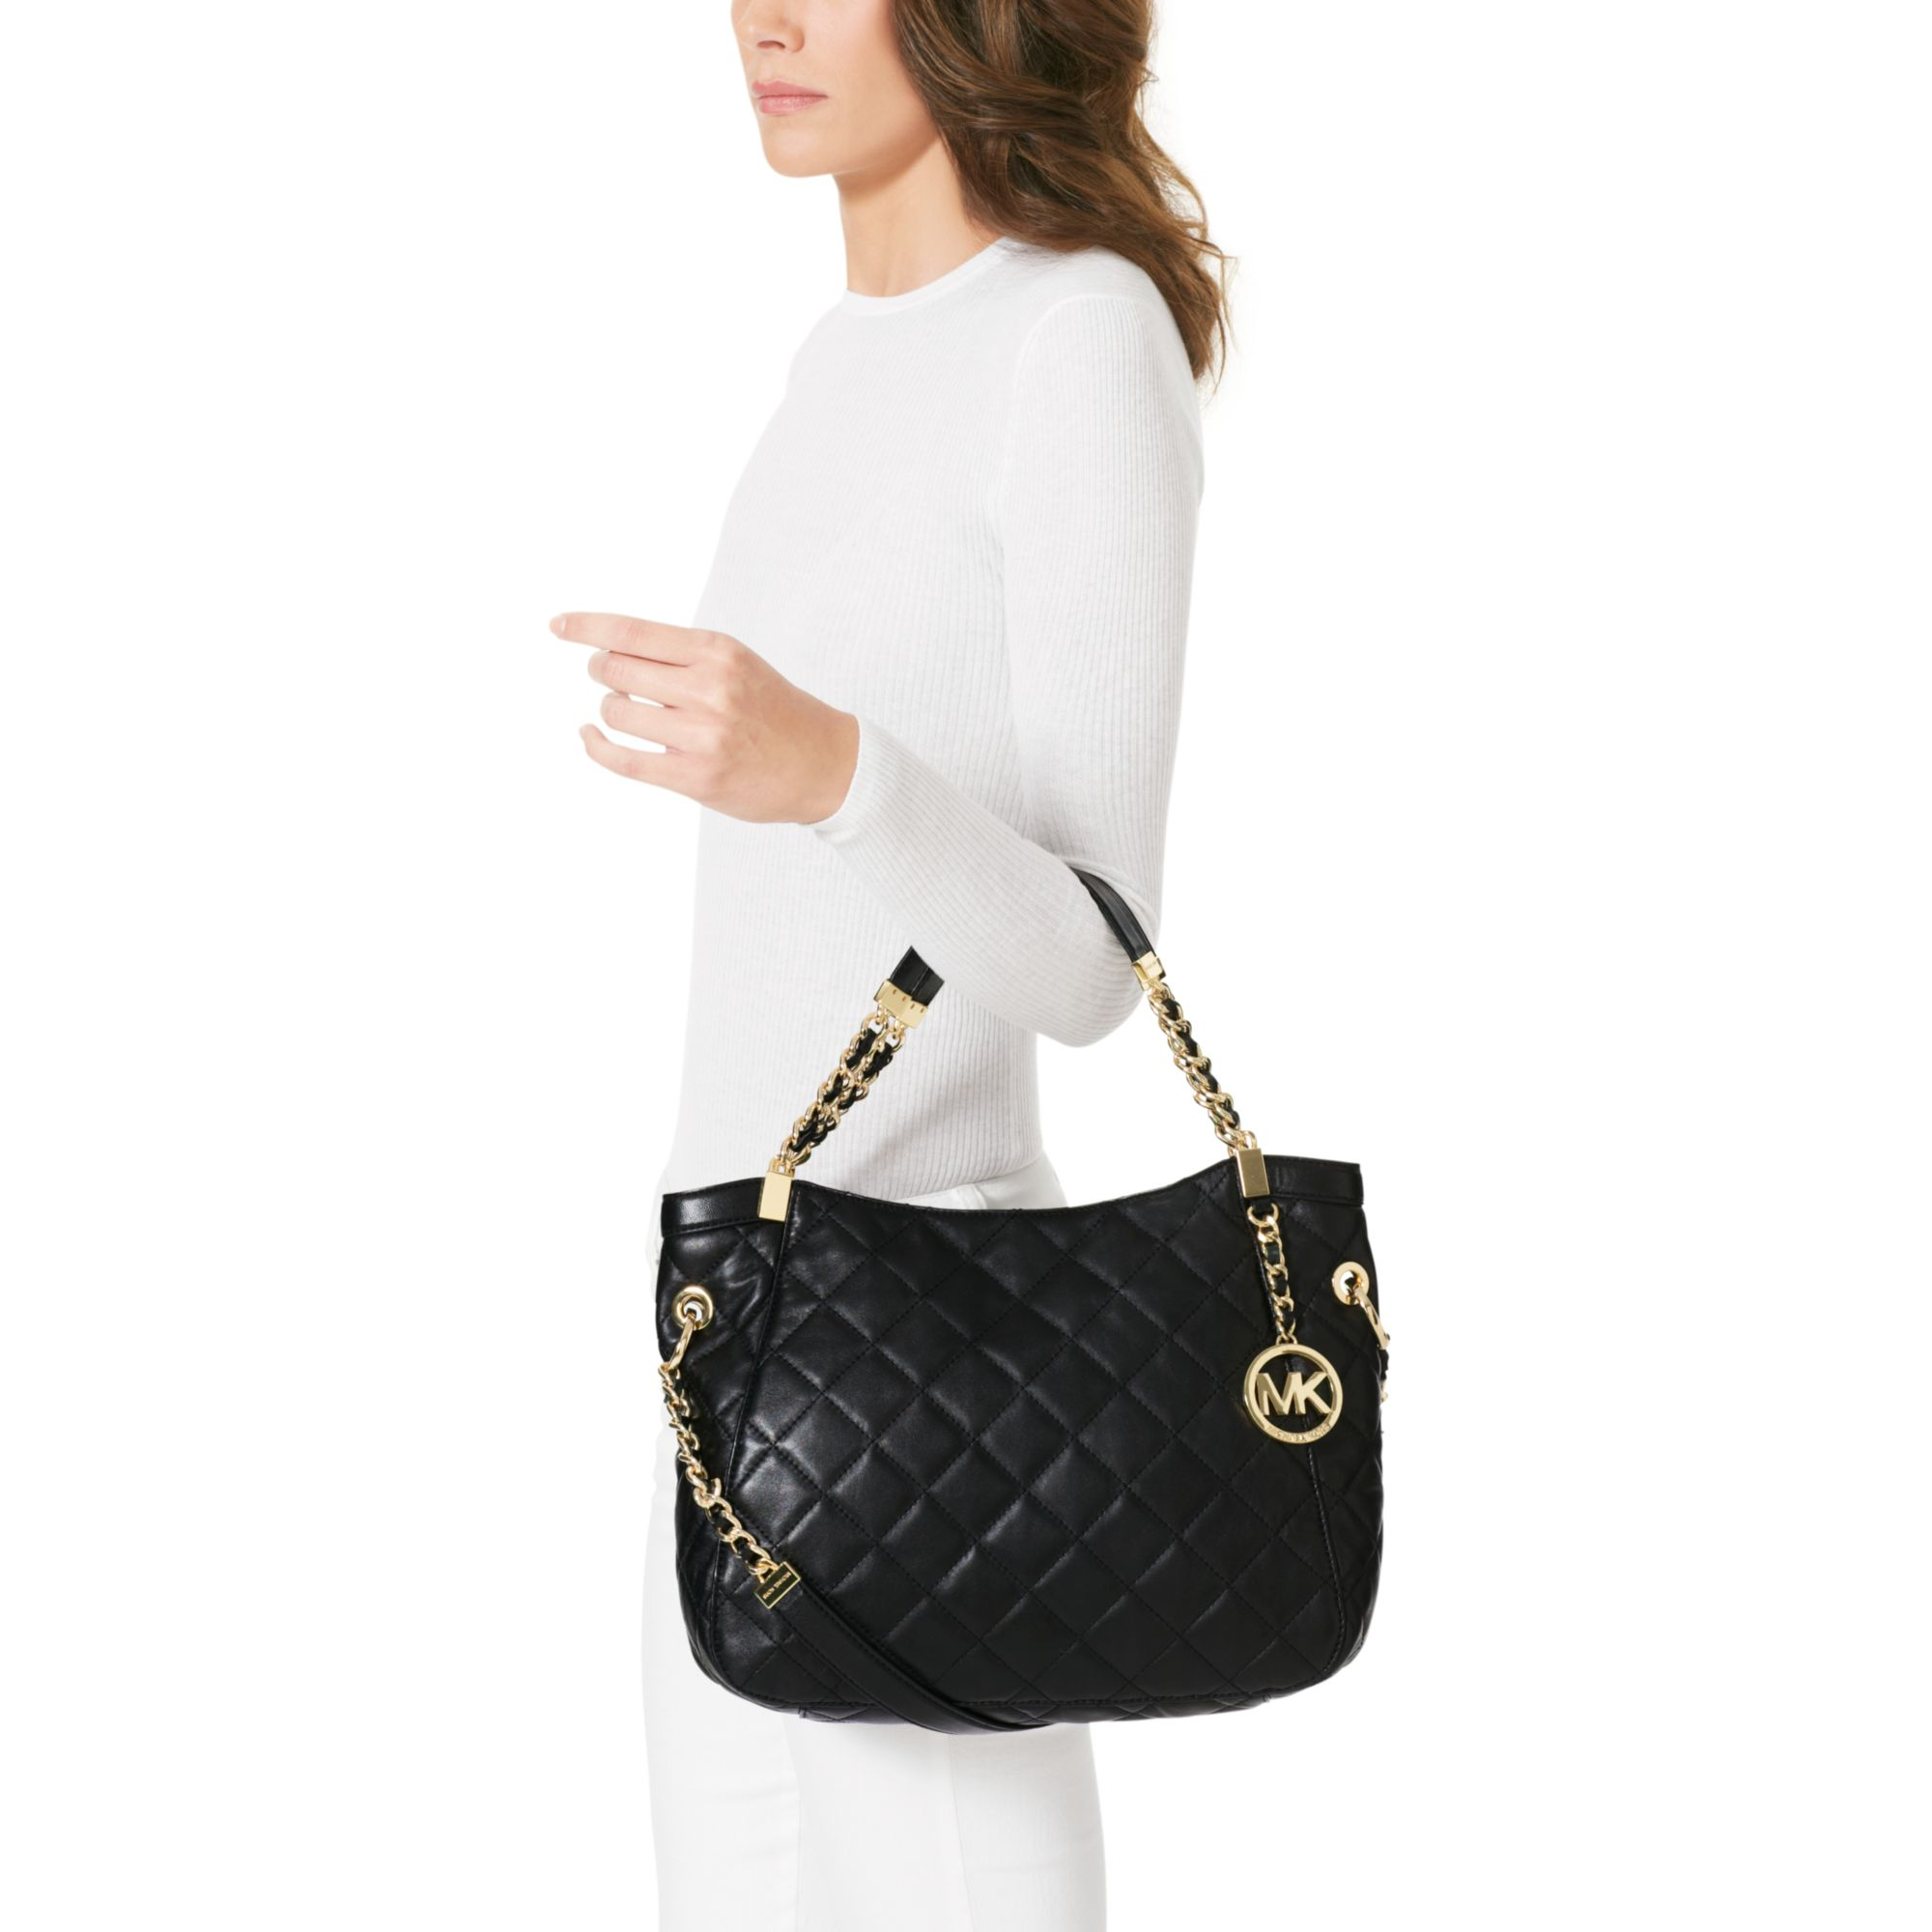 a82cc757a029 Lyst - Michael Kors Susannah Large Quilted Leather Tote in Black